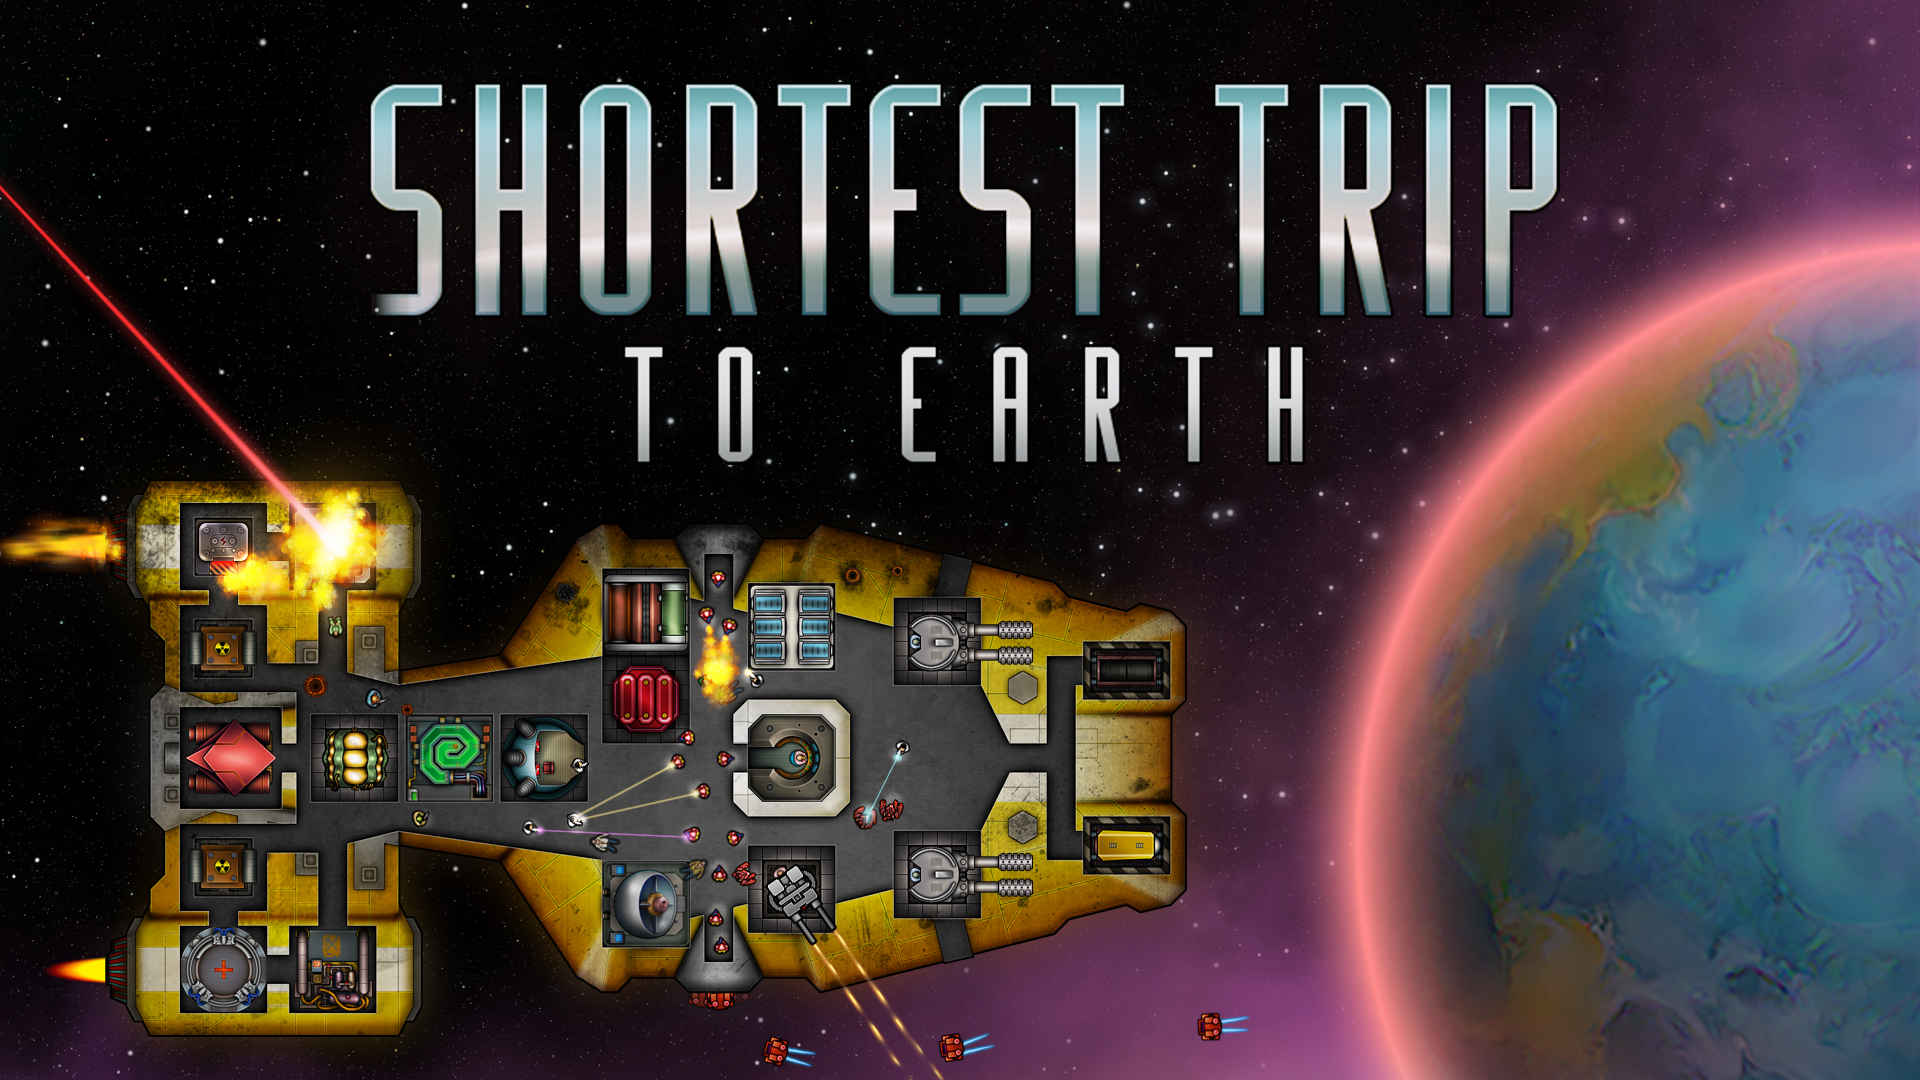 [Gamescom 2018] Shortest Trip to Earth – Provato il nuovo titolo di Iceberg Interactive